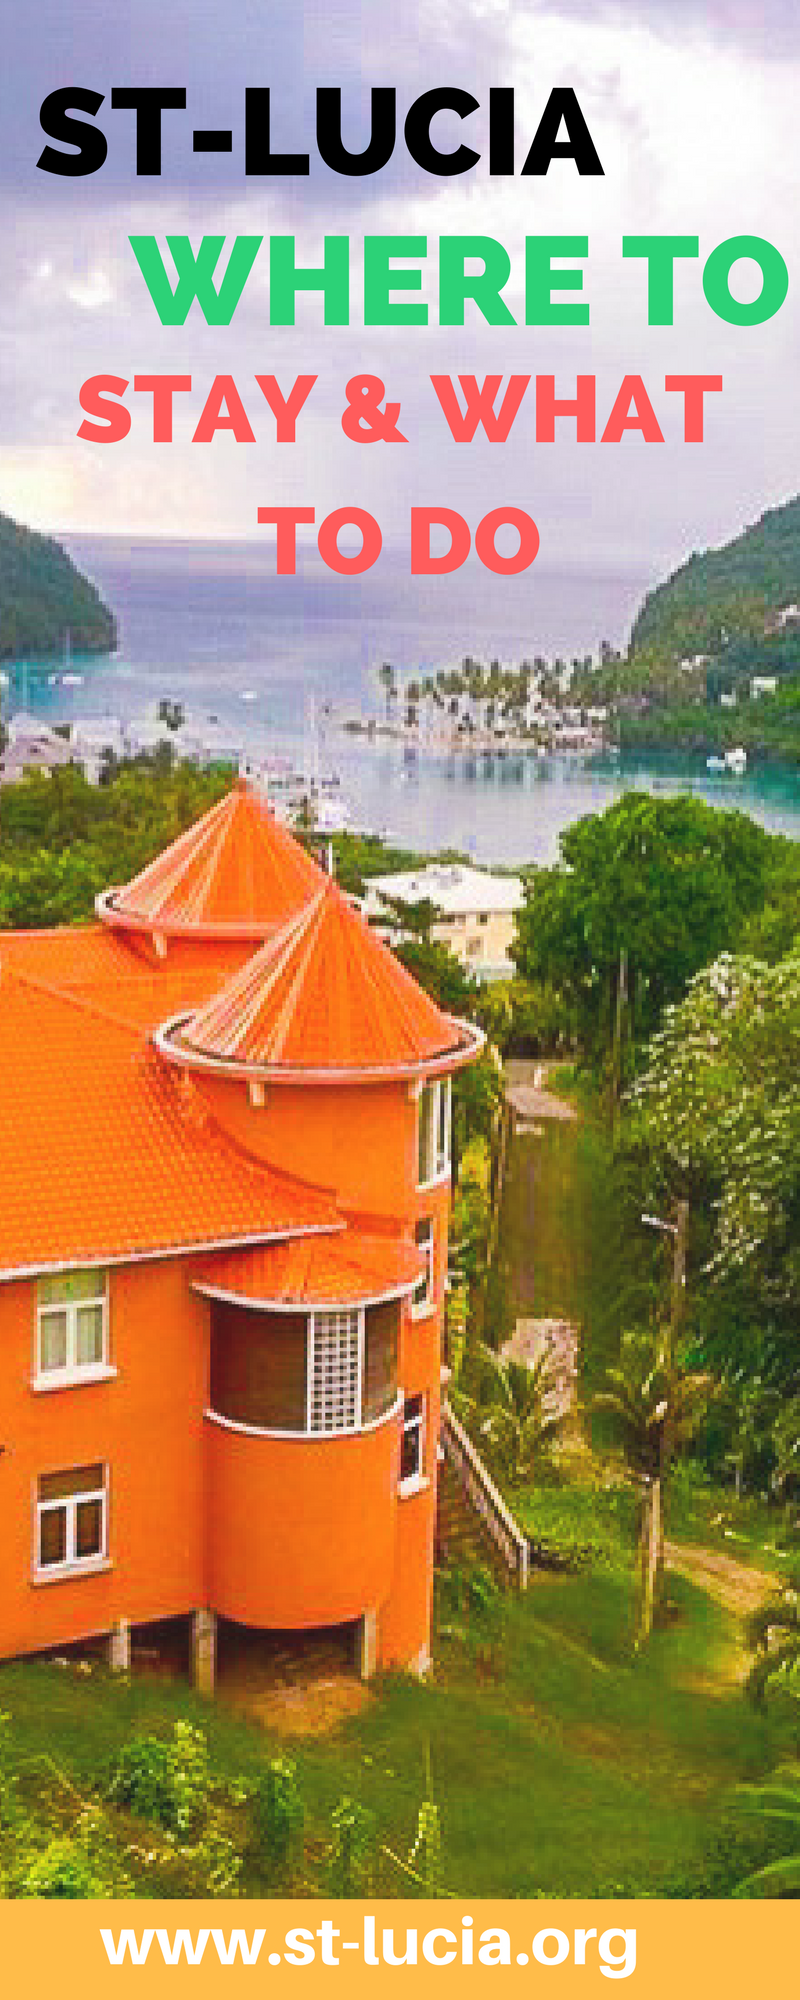 Things to do in St Lucia.